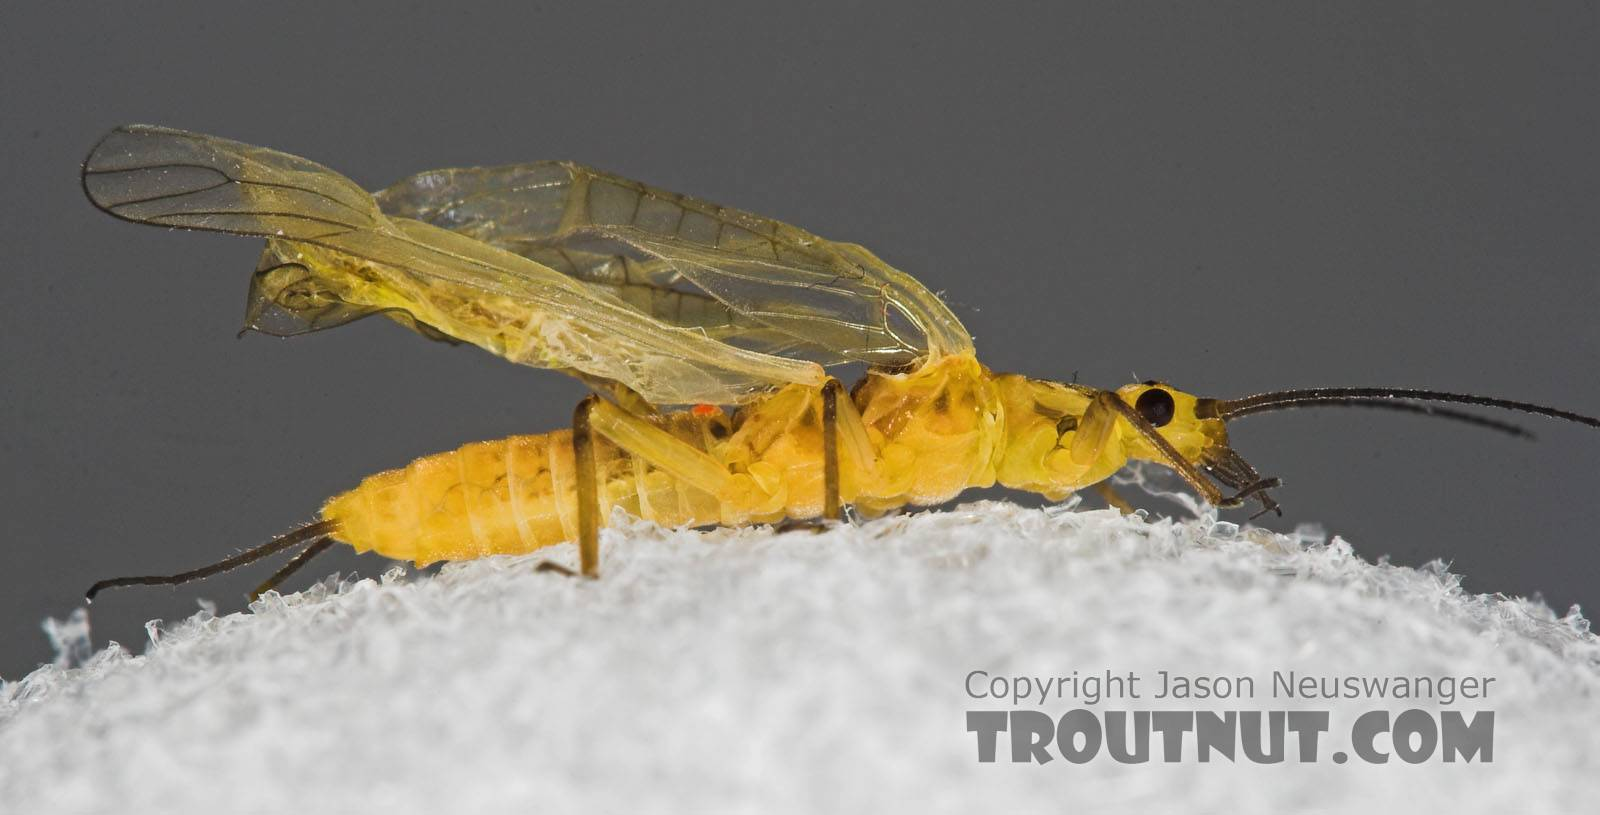 Isoperla (Stripetails and Yellow Stones) Stonefly Adult from Salmon Creek in New York